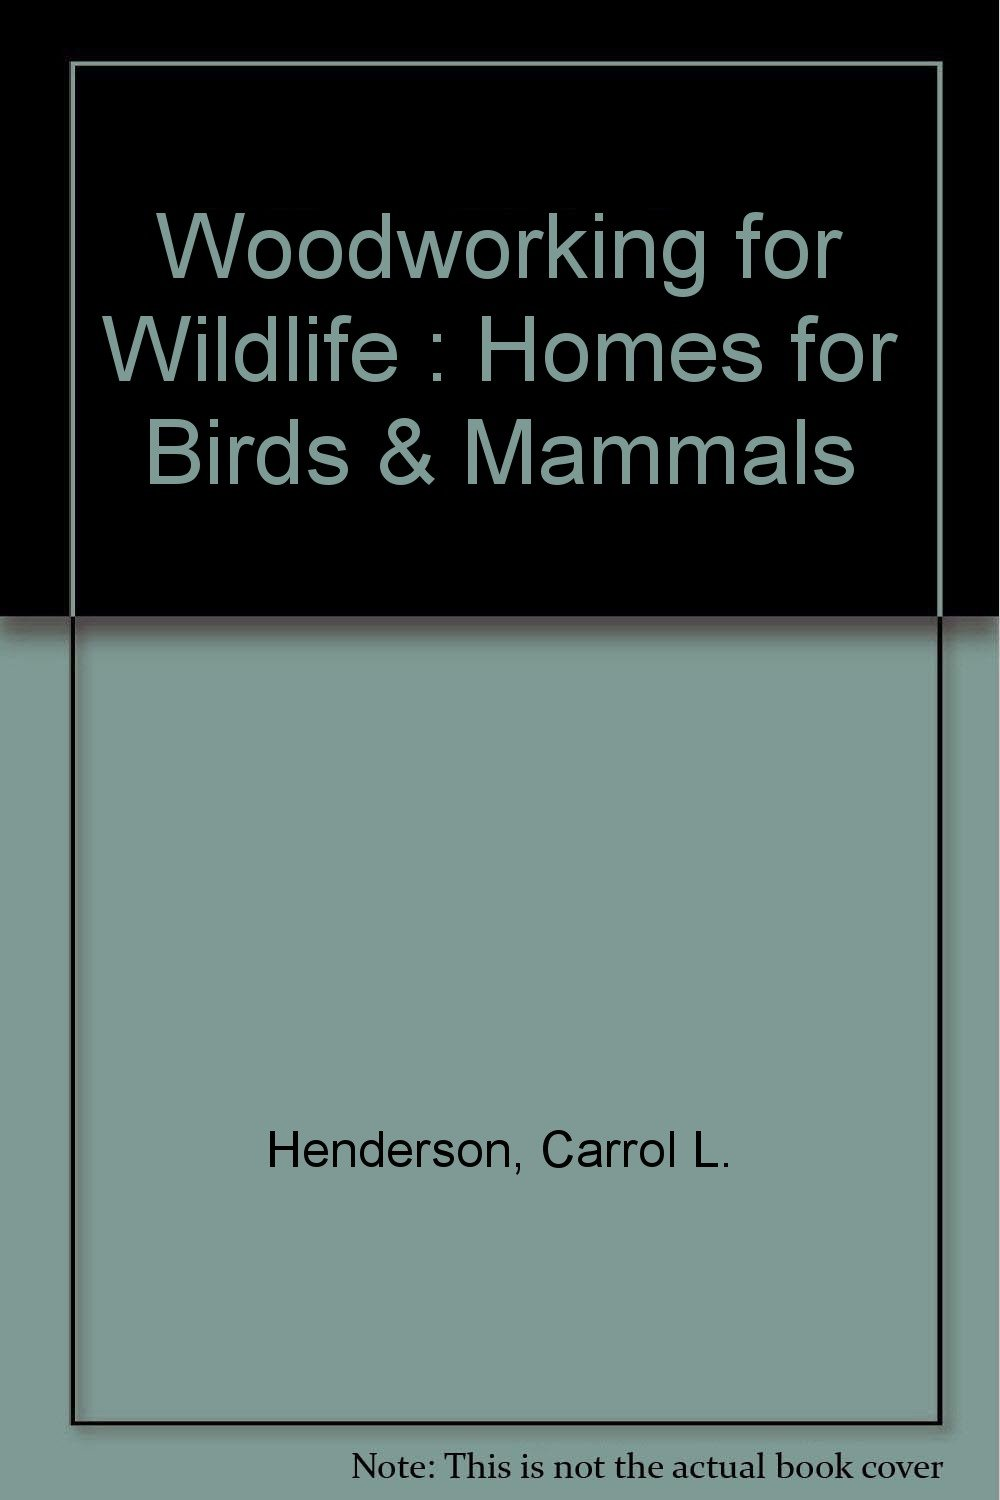 Woodworking for Wildlife: Homes for Birds and Mammals